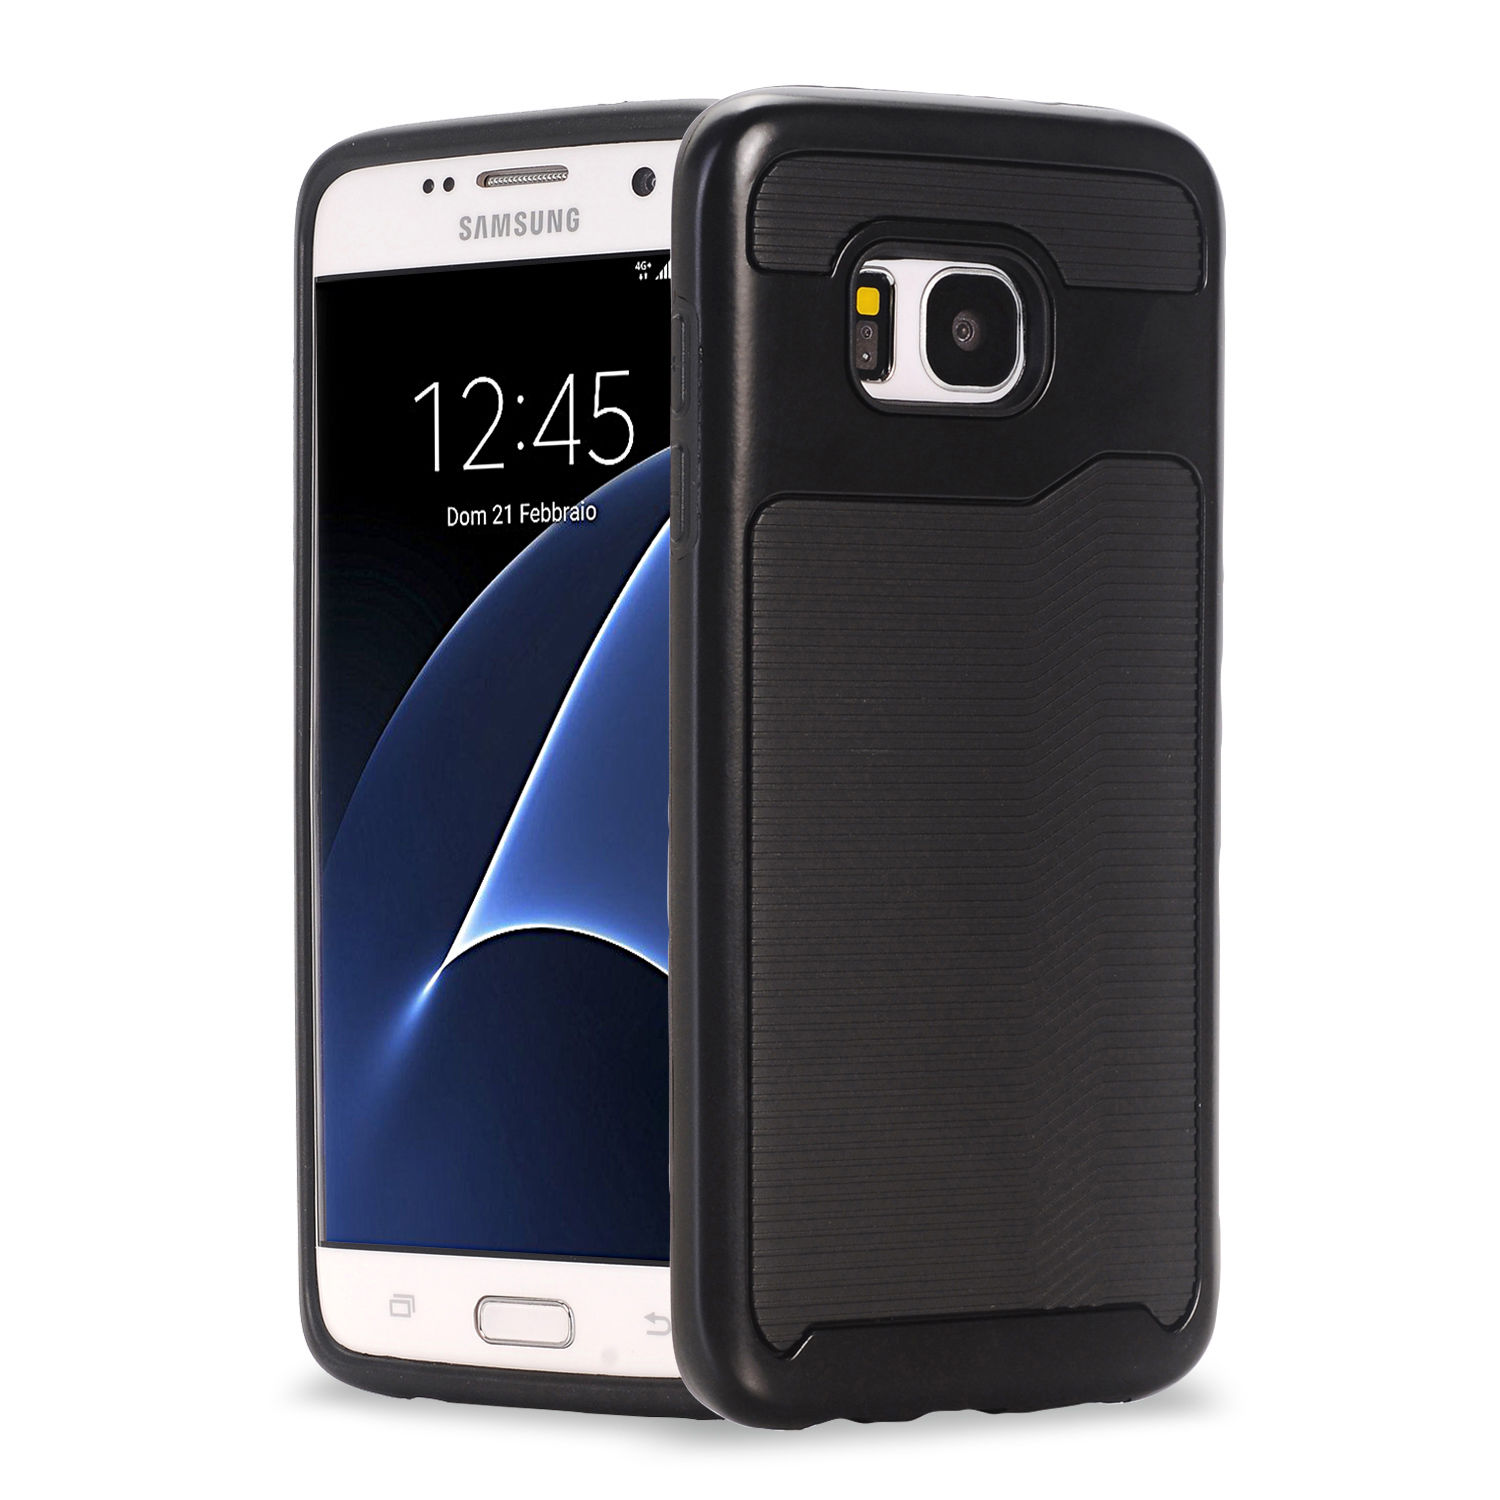 for samsung galaxy s7 edge heavy duty shockproof case. Black Bedroom Furniture Sets. Home Design Ideas